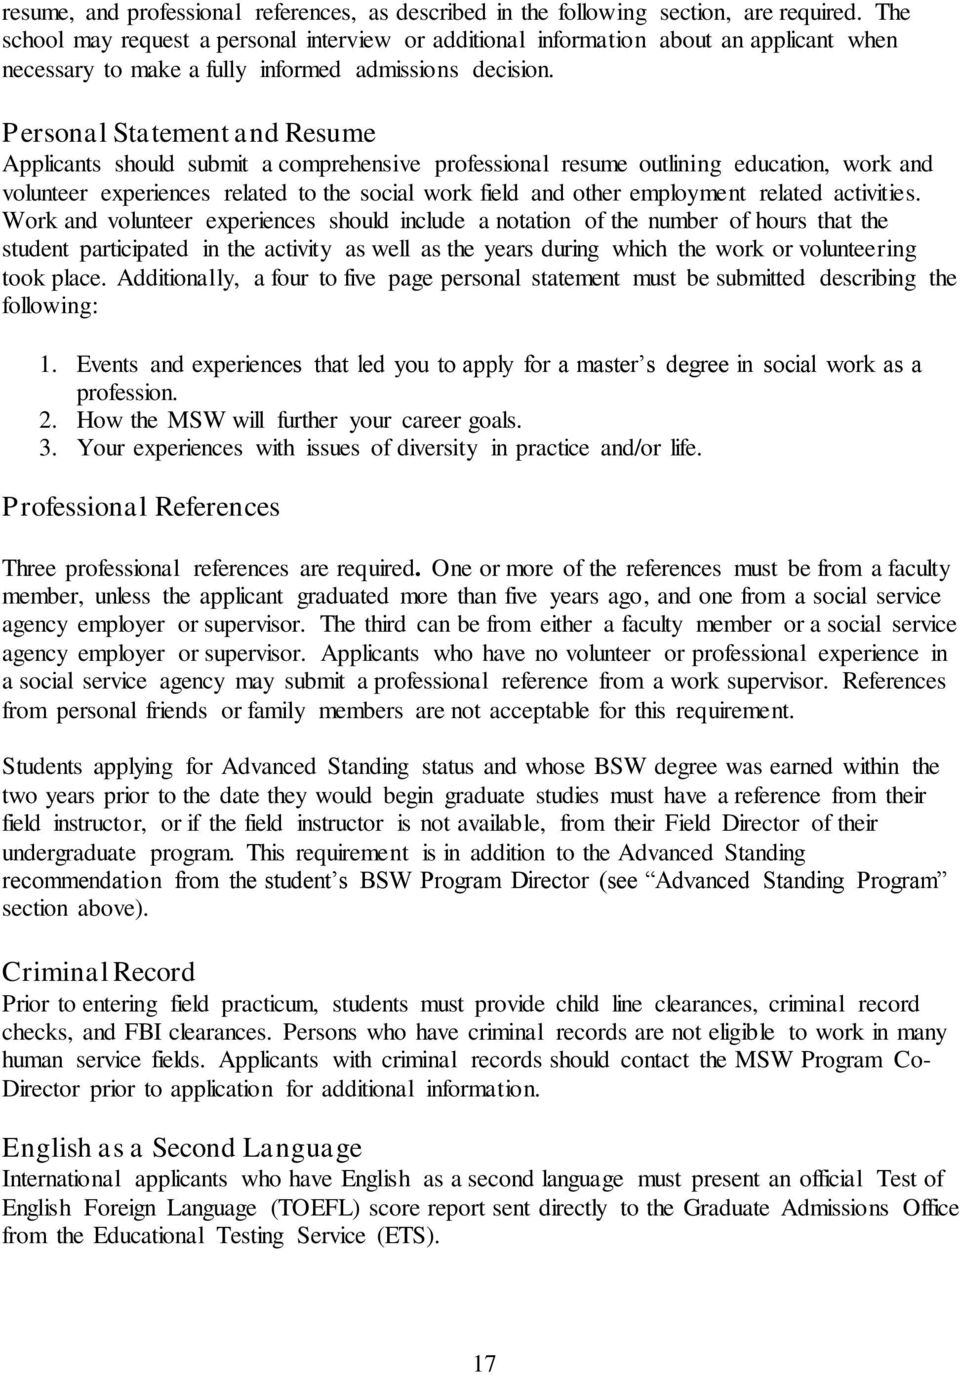 Personal Statement and Resume Applicants should submit a comprehensive professional resume outlining education, work and volunteer experiences related to the social work field and other employment